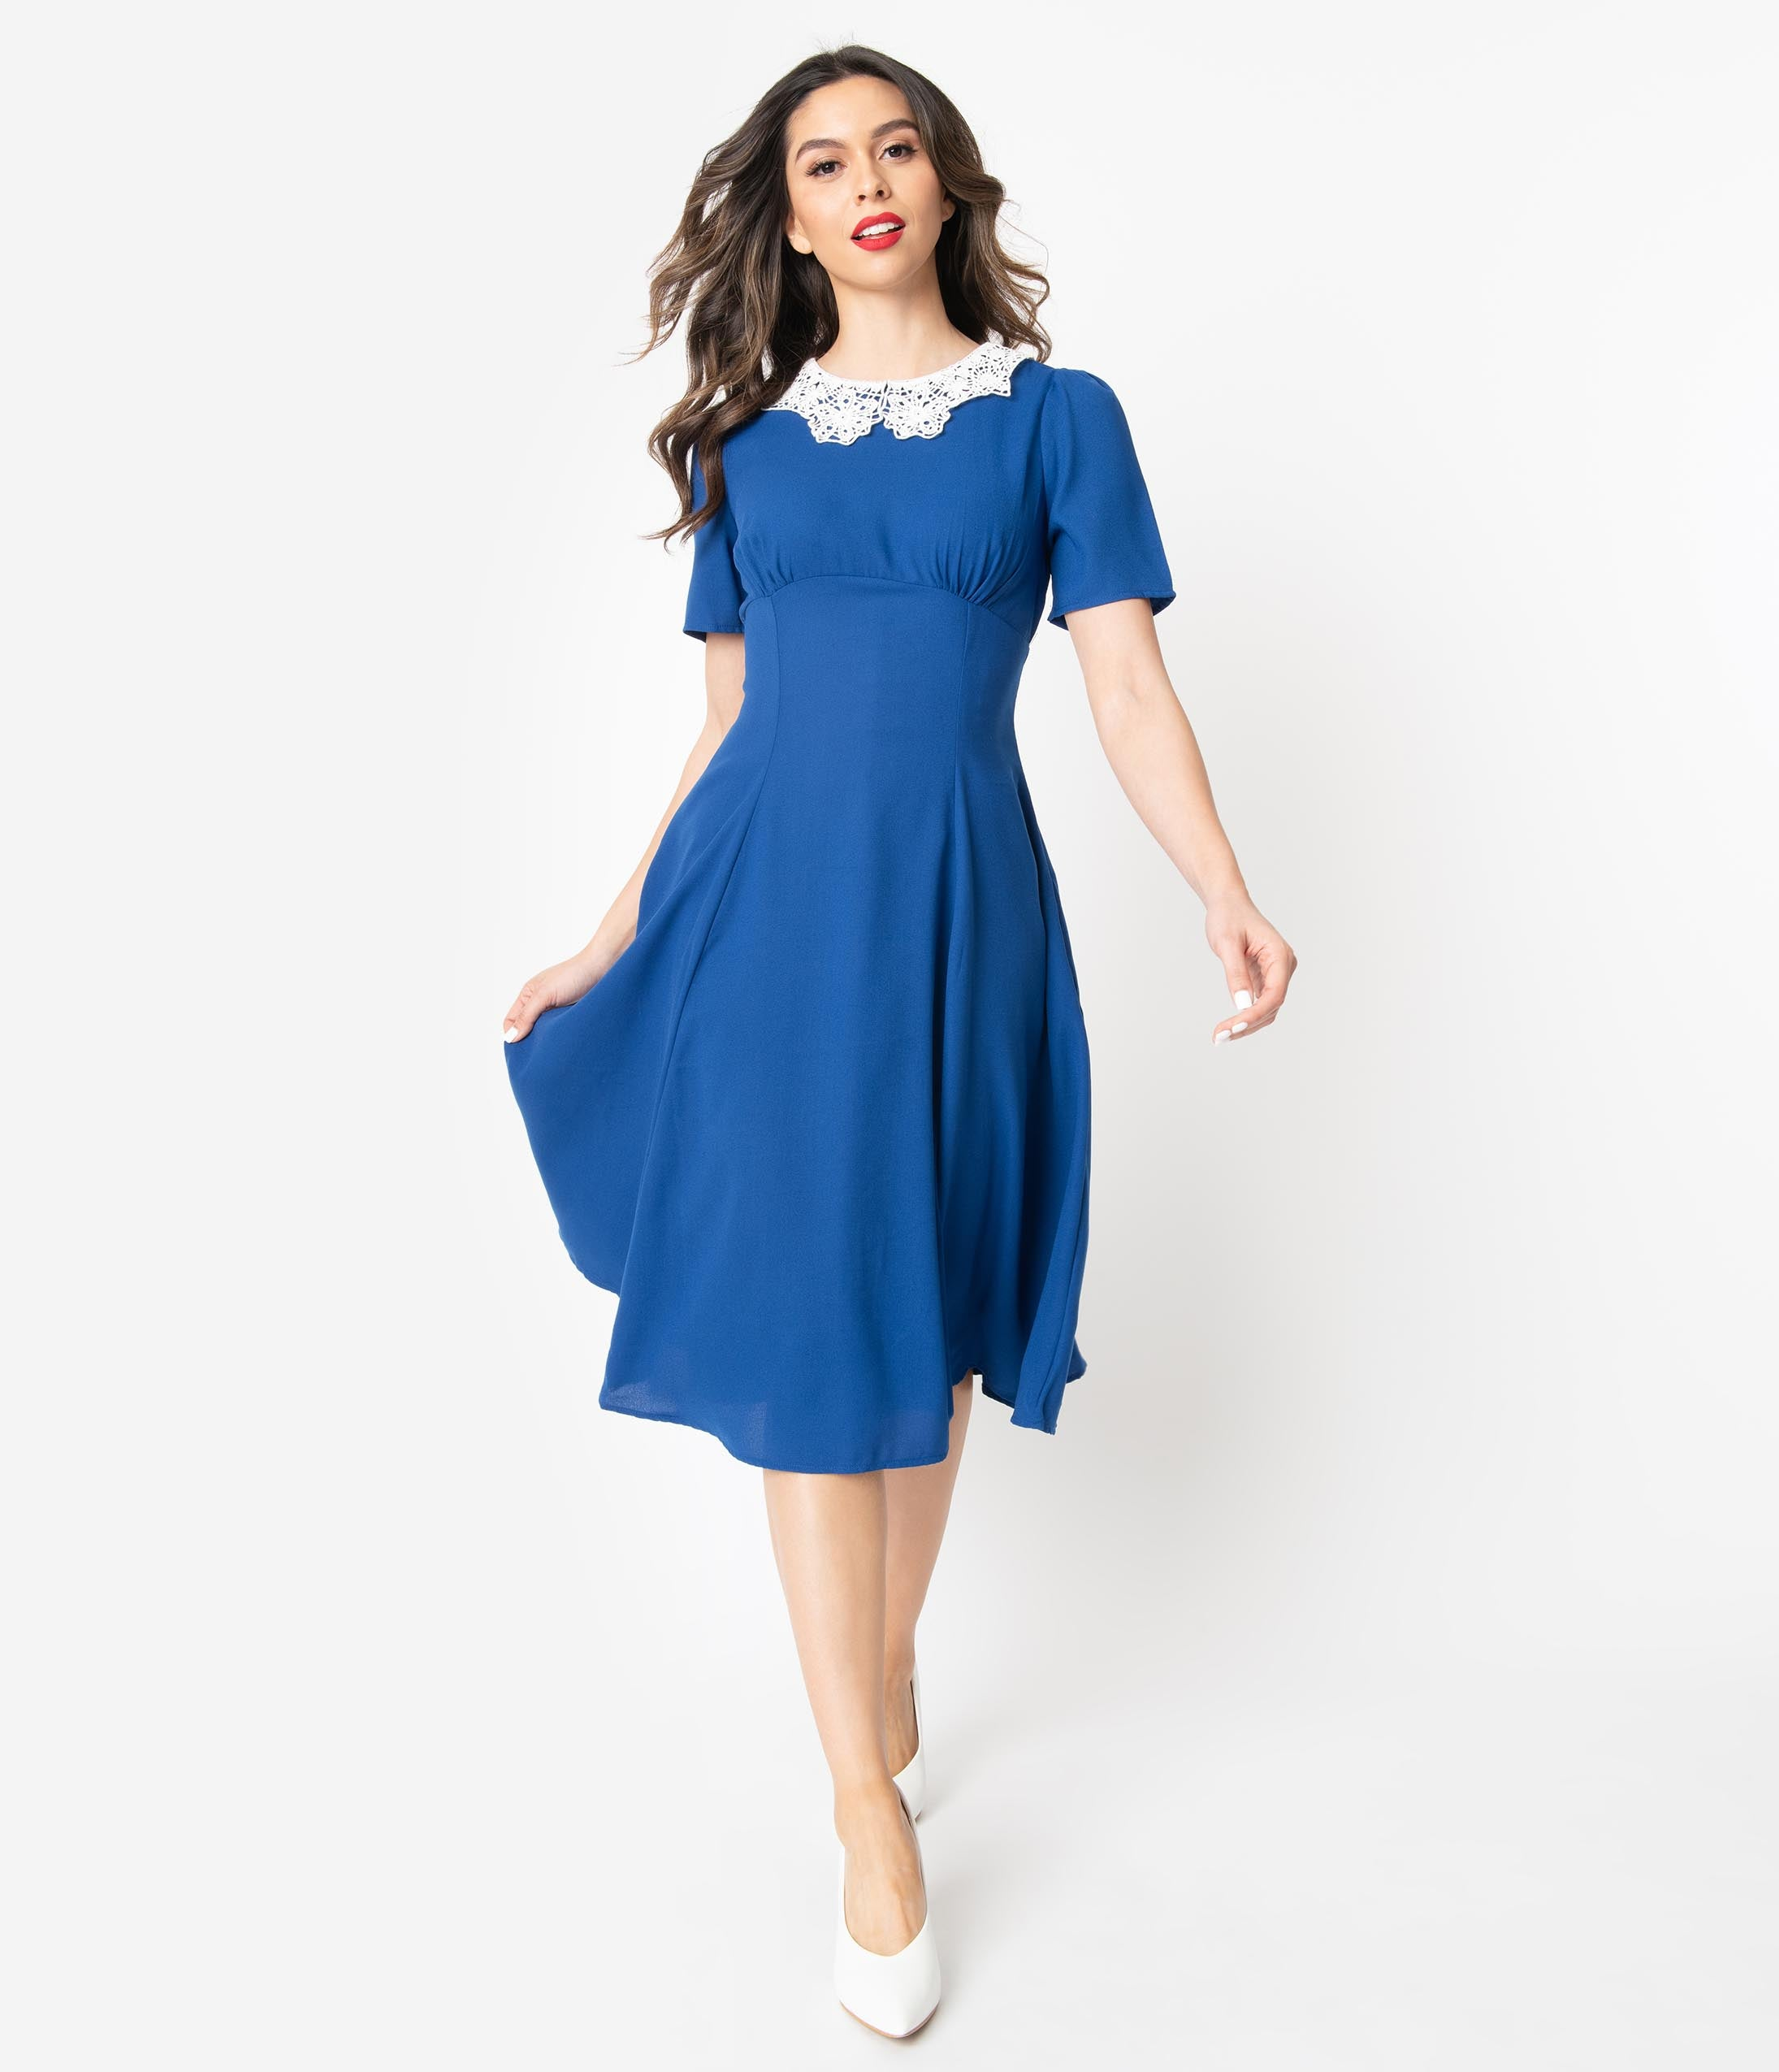 1930s Day Dresses, Afternoon Dresses History 1950S Royal Blue  Ivory Lace Collar Quita Swing Dress $68.00 AT vintagedancer.com